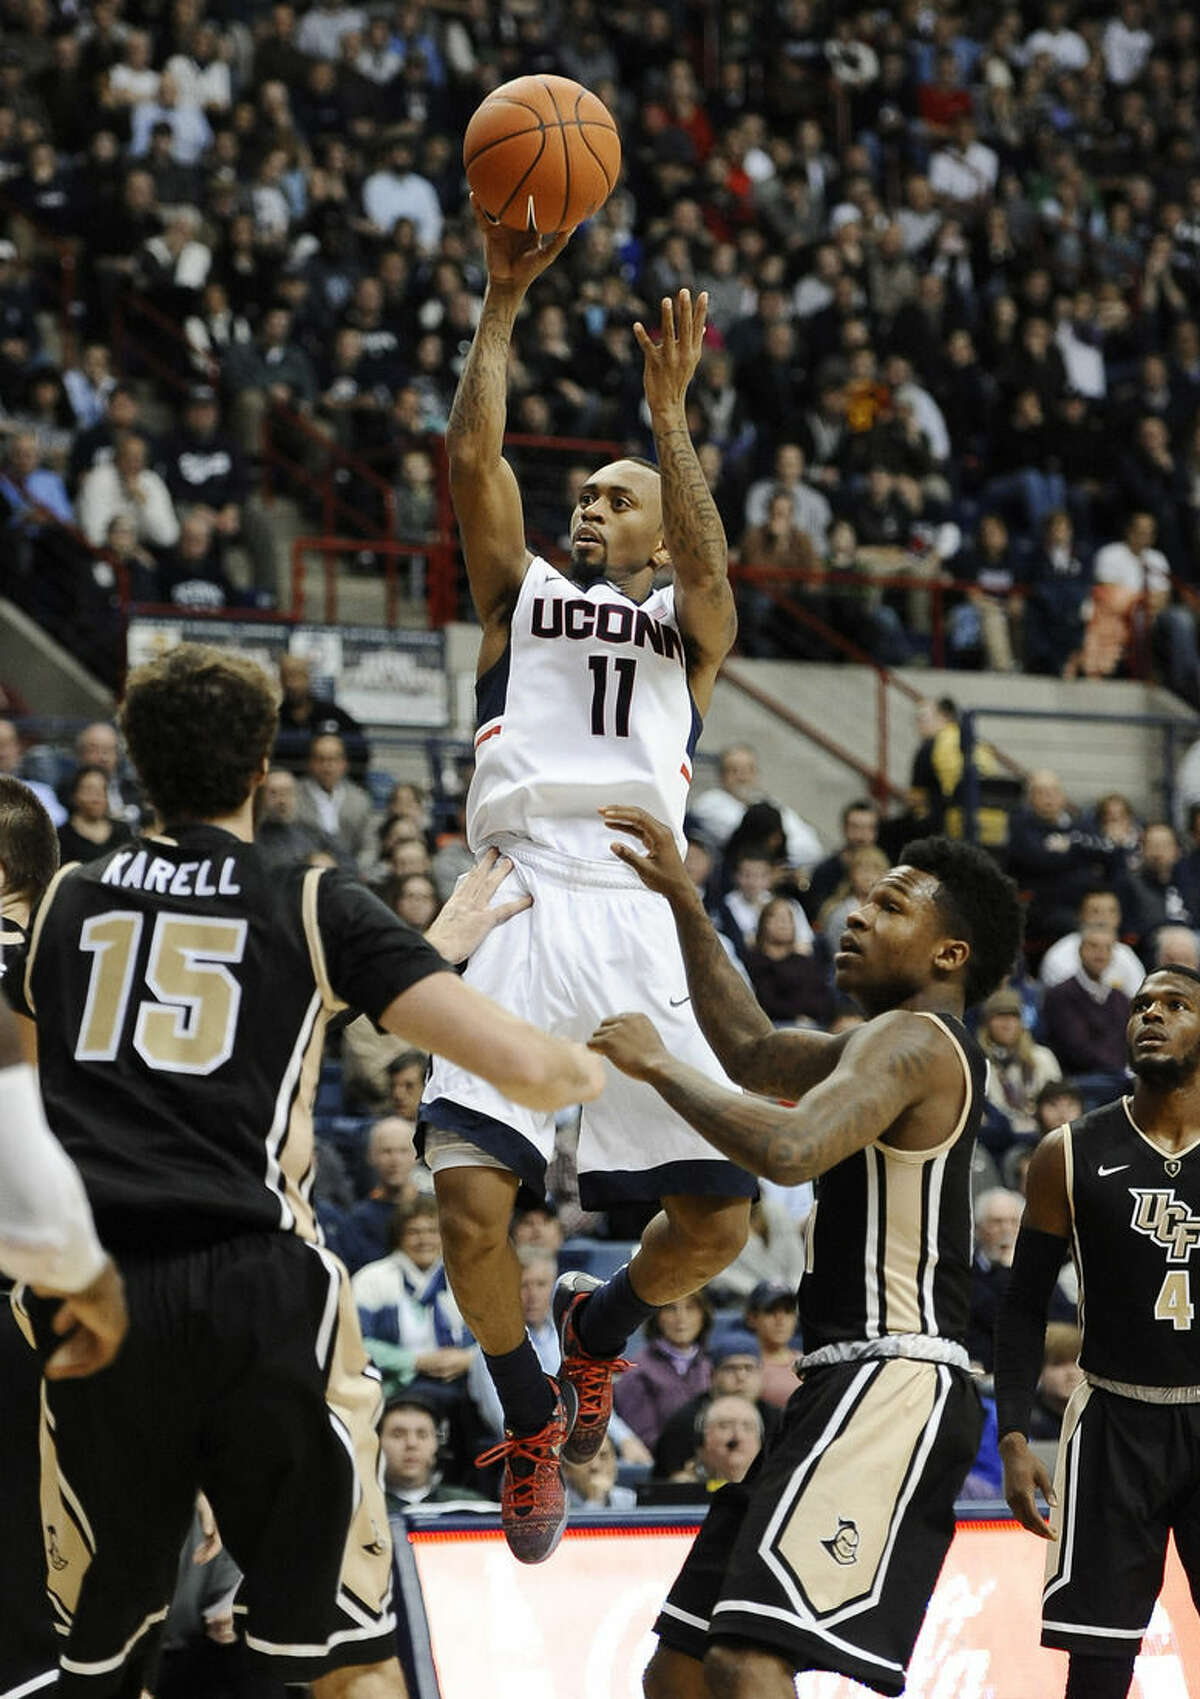 Connecticut's Ryan Boatright shoots over UCF's Dylan Karell, left, and Brandon Goodwin, right, during the second half of an NCAA college basketball game, Thursday, Jan. 22, 2015, in Storrs, Conn. Connecticut won 67-60. (AP Photo/Jessica Hill)